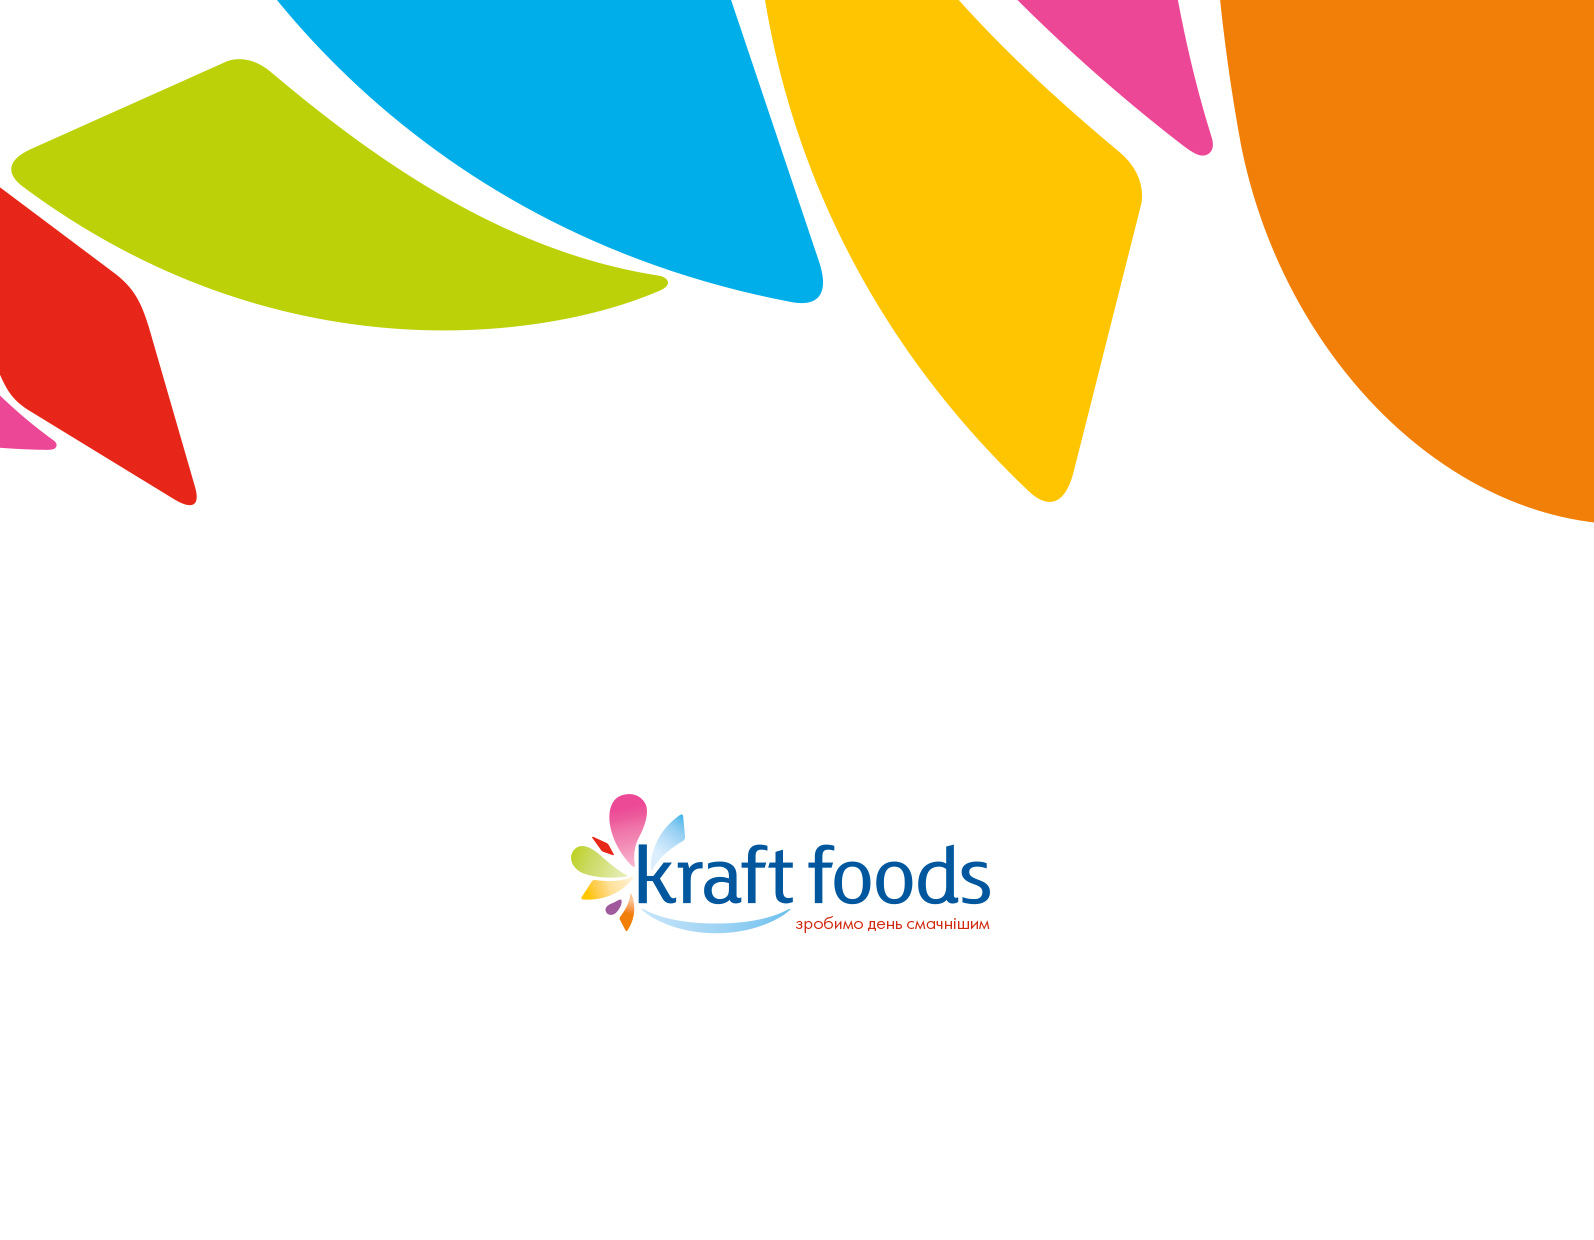 technical resources for kraft foods